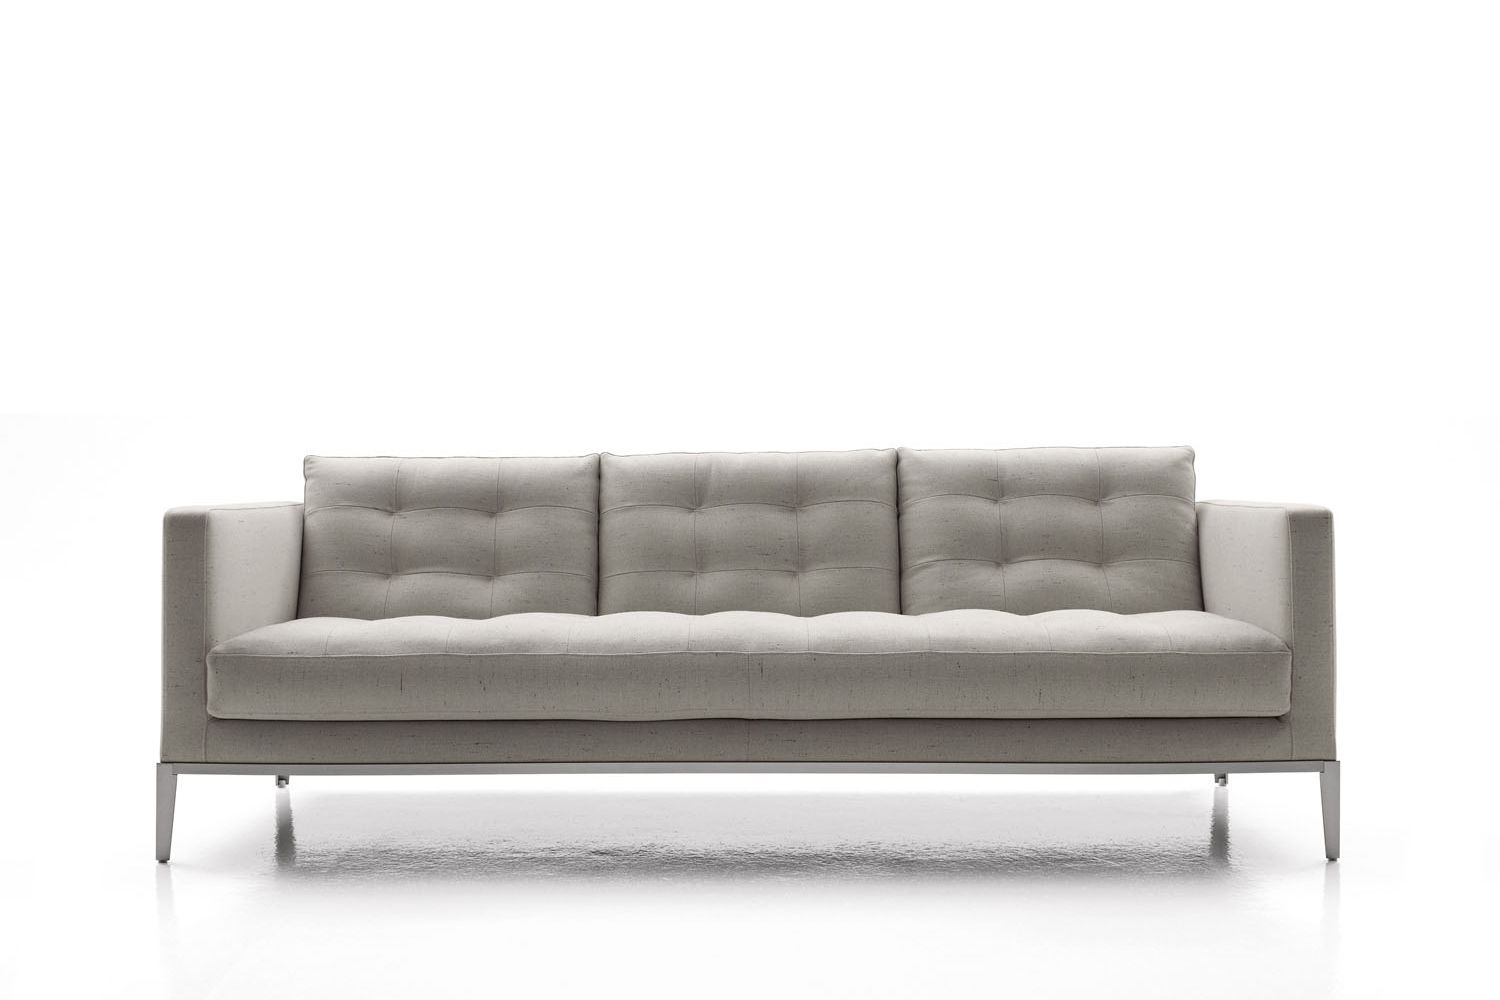 Bettsessel Interio Sofa Lounge